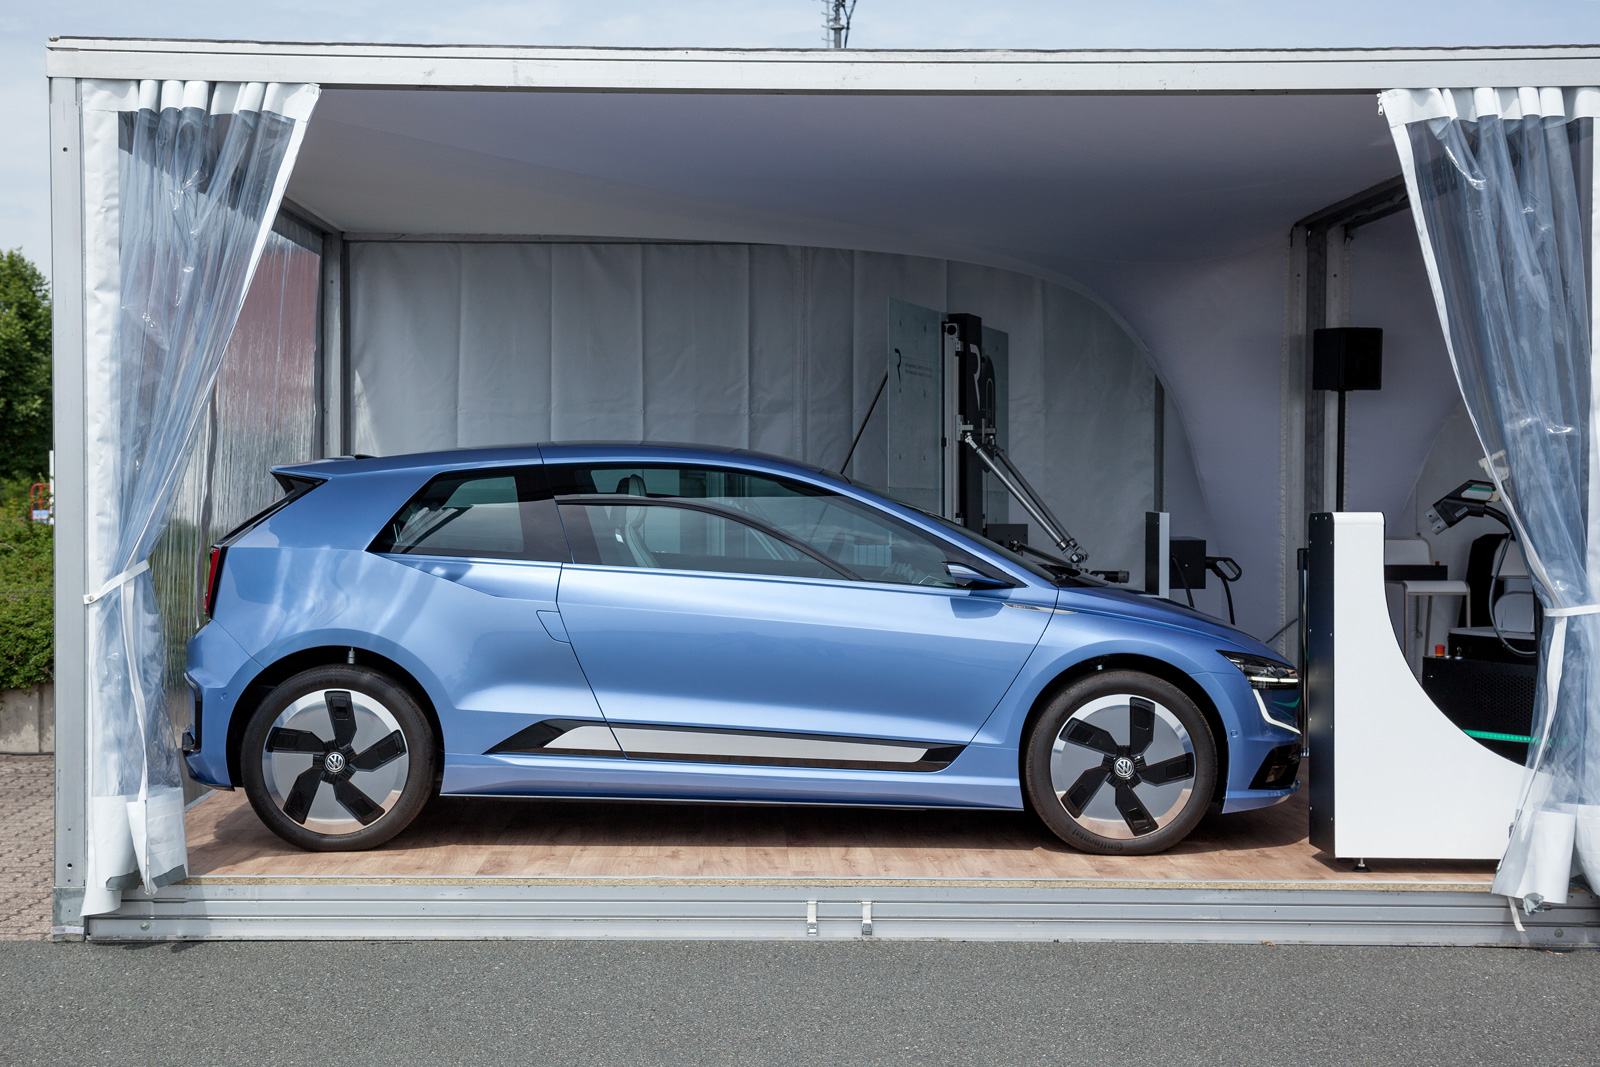 This Volkswagen Concept Could Preview the Next e